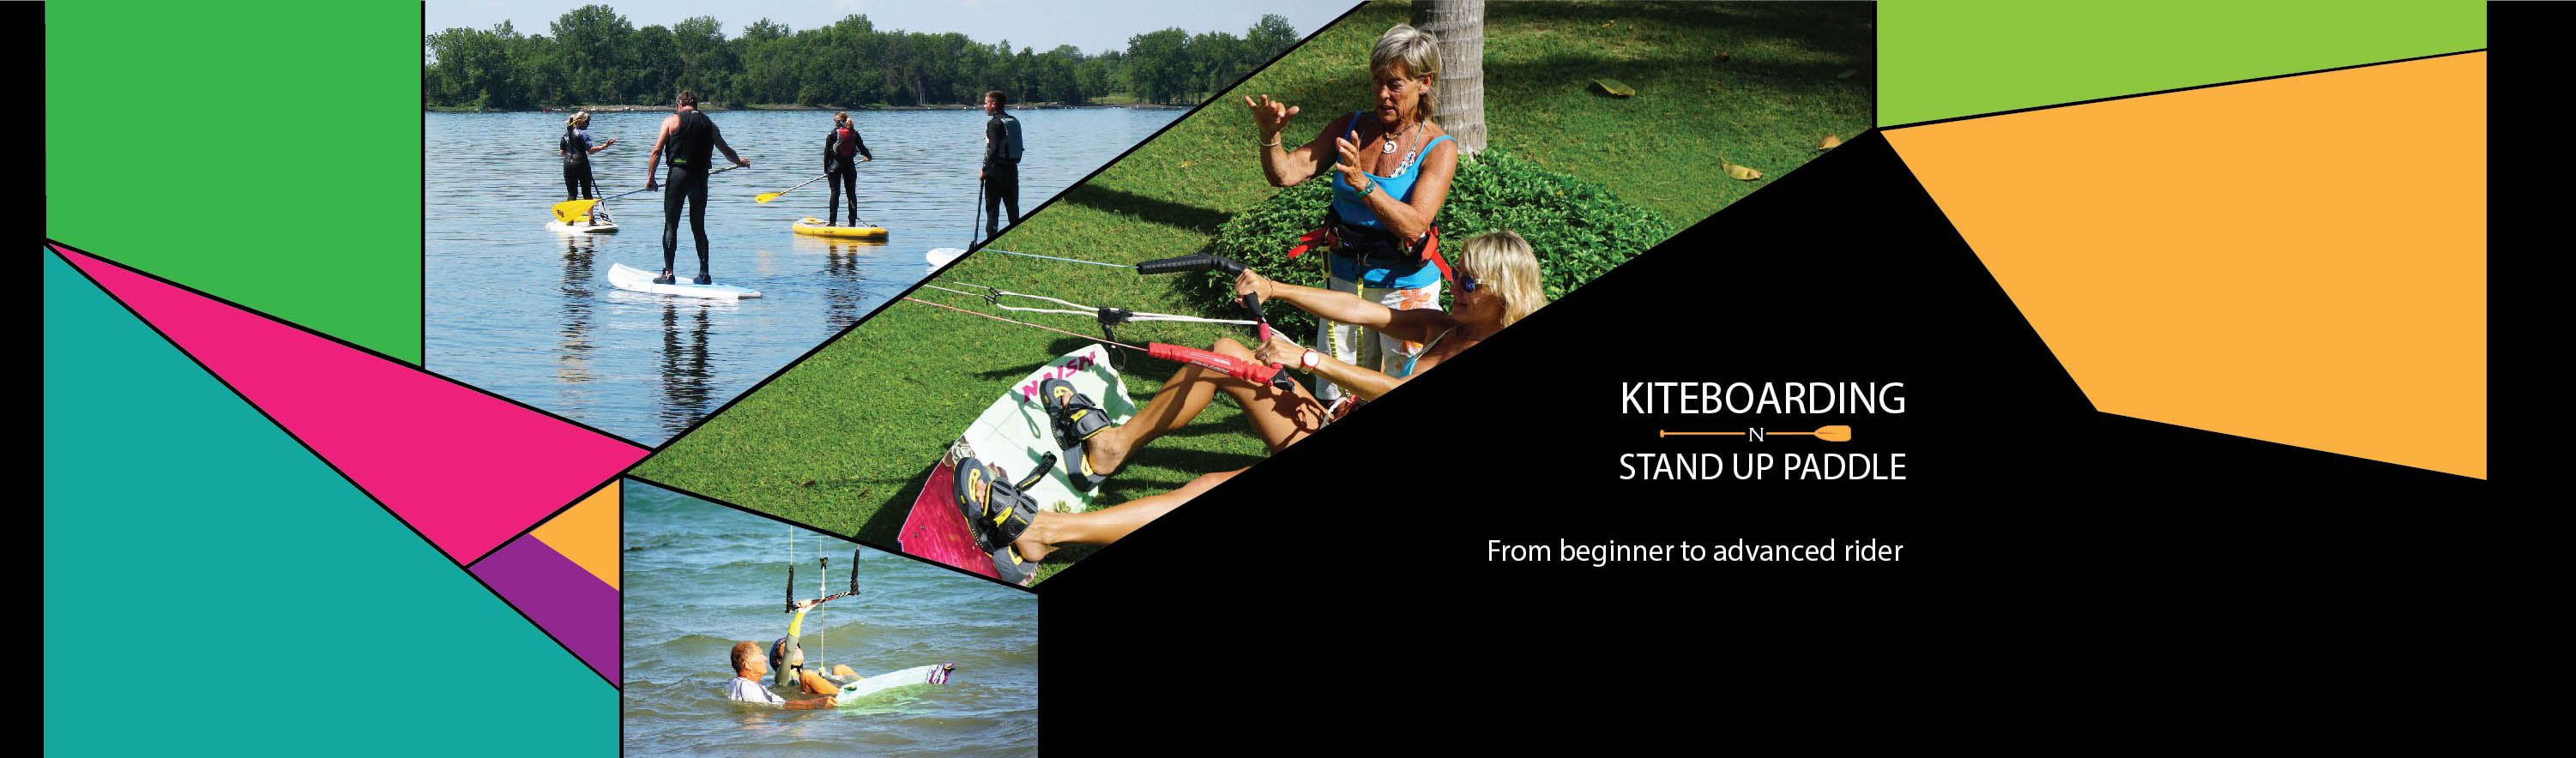 Kiteboarding SUP school lake Champlain Vermont Bay